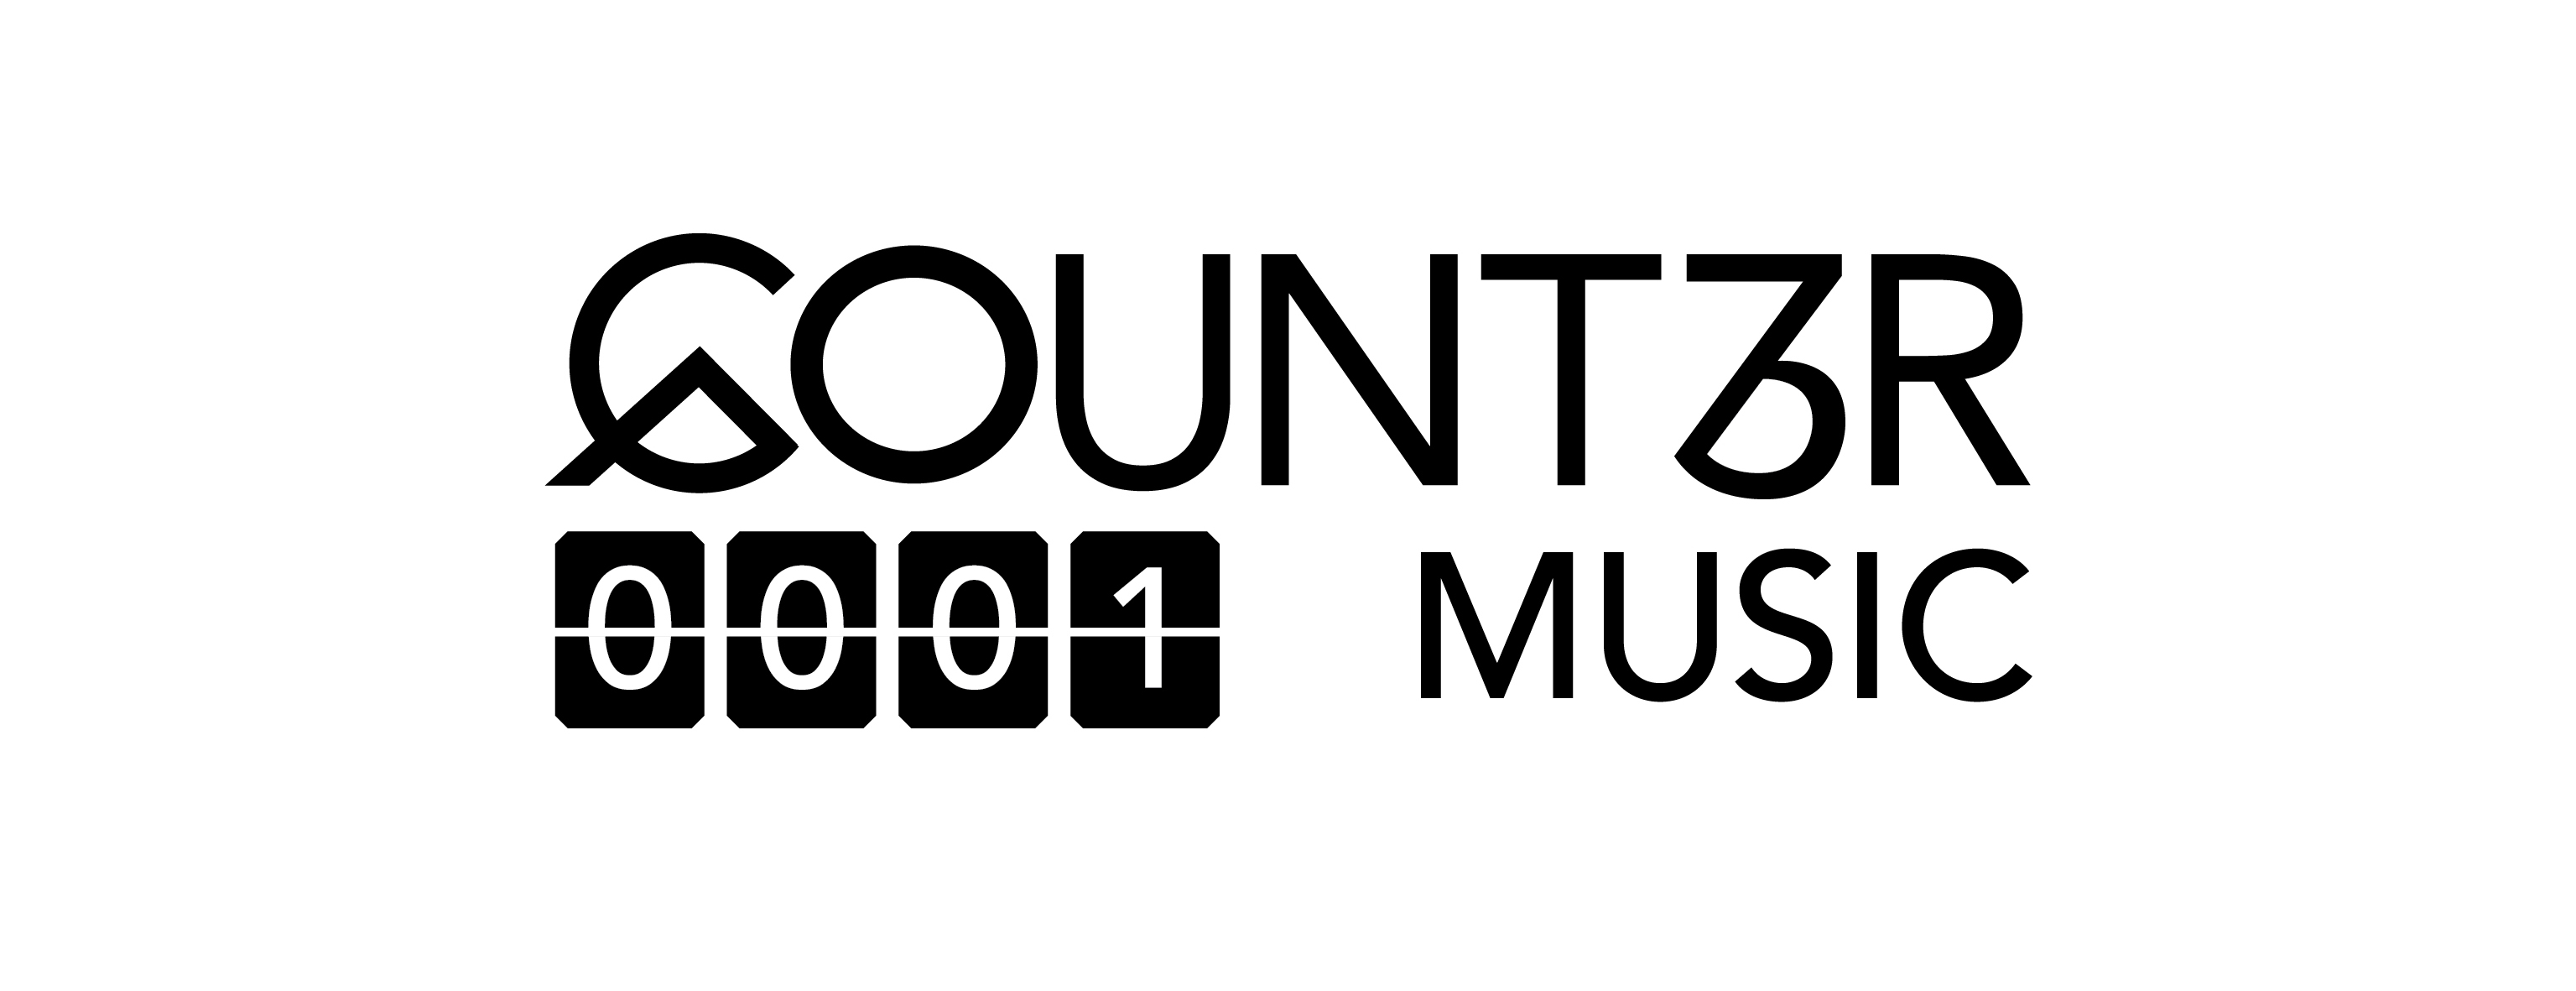 Counter Music Logo White Background